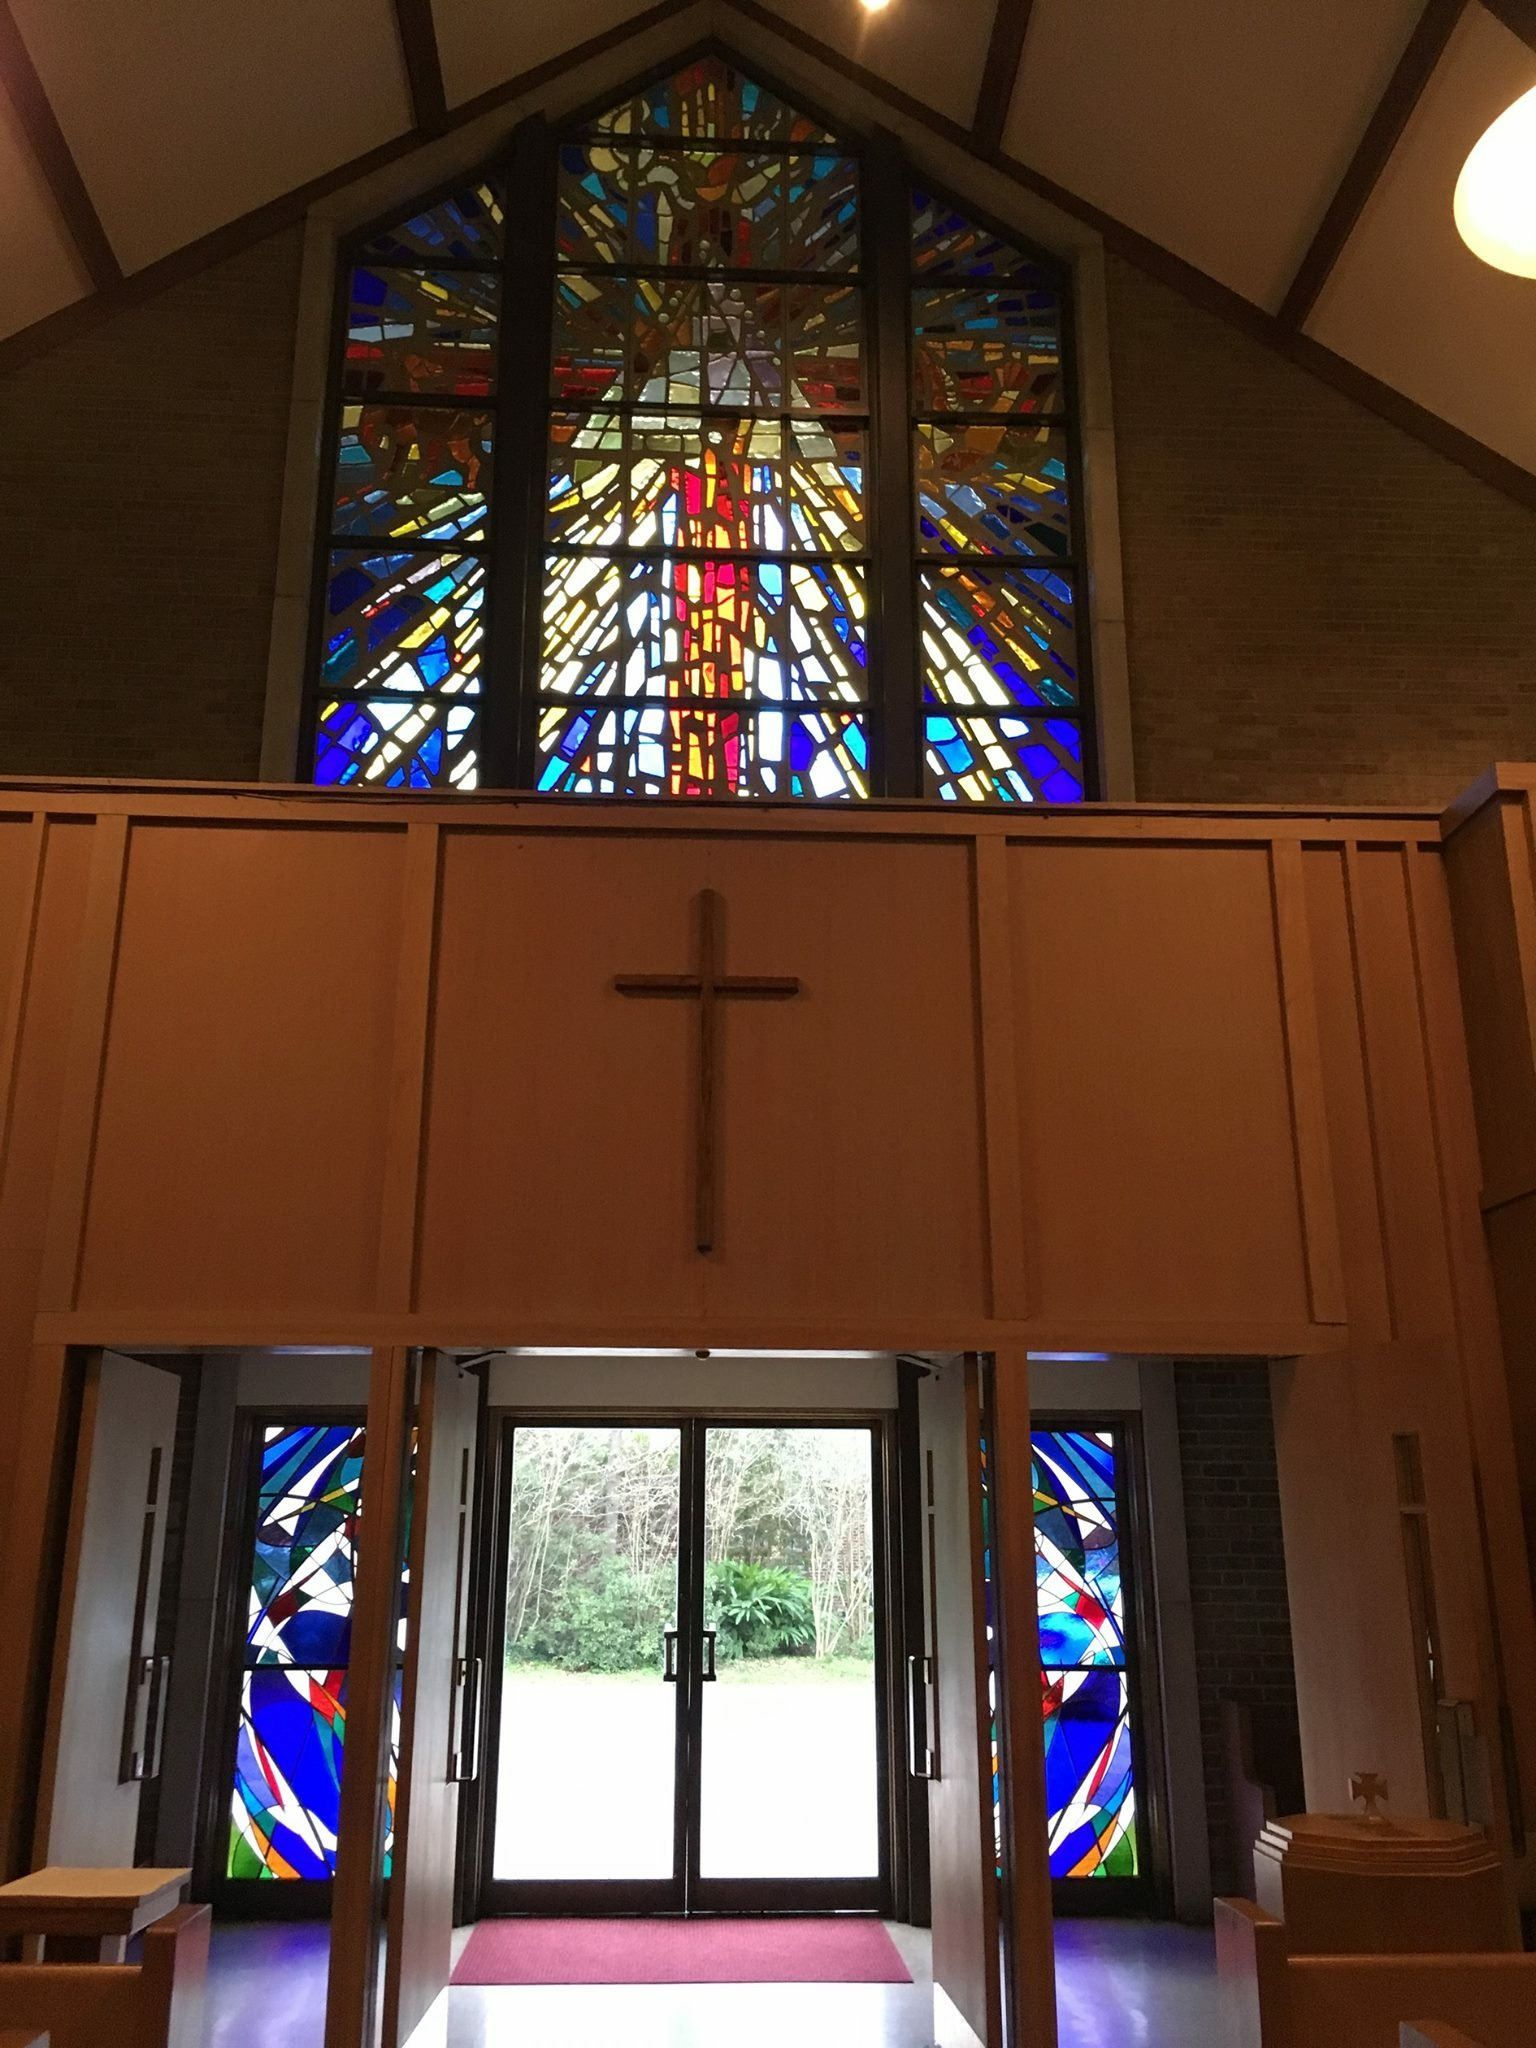 windows baton rouge sam corso stained glass windows added bottom left and right december 2015 trinity baton rouge pinterest